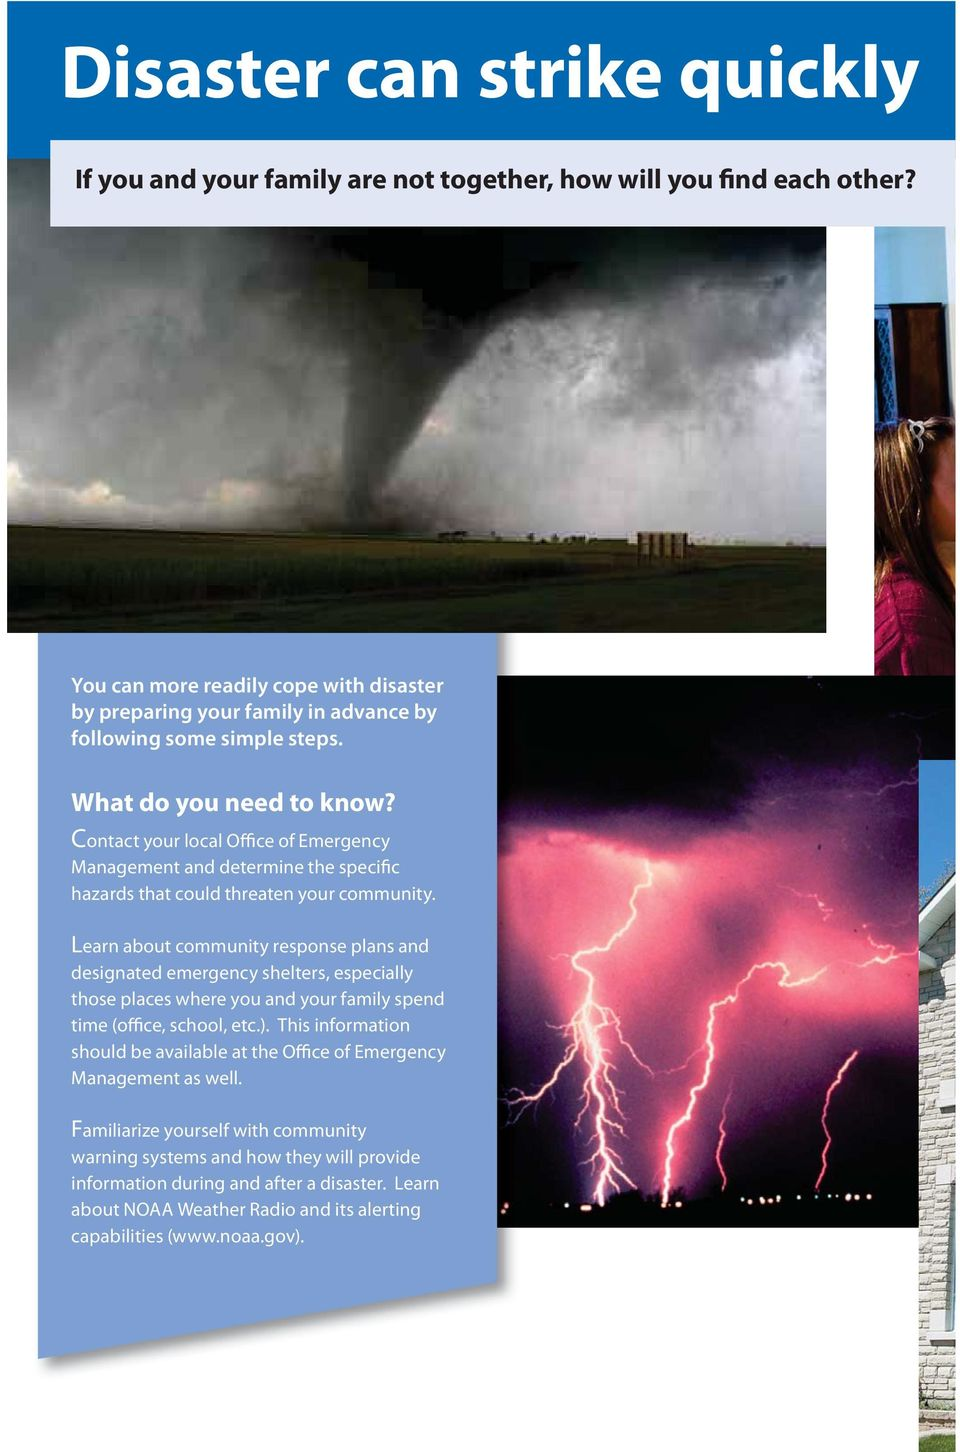 Contact your local Office of Emergency Management and determine the specific hazards that could threaten your community.